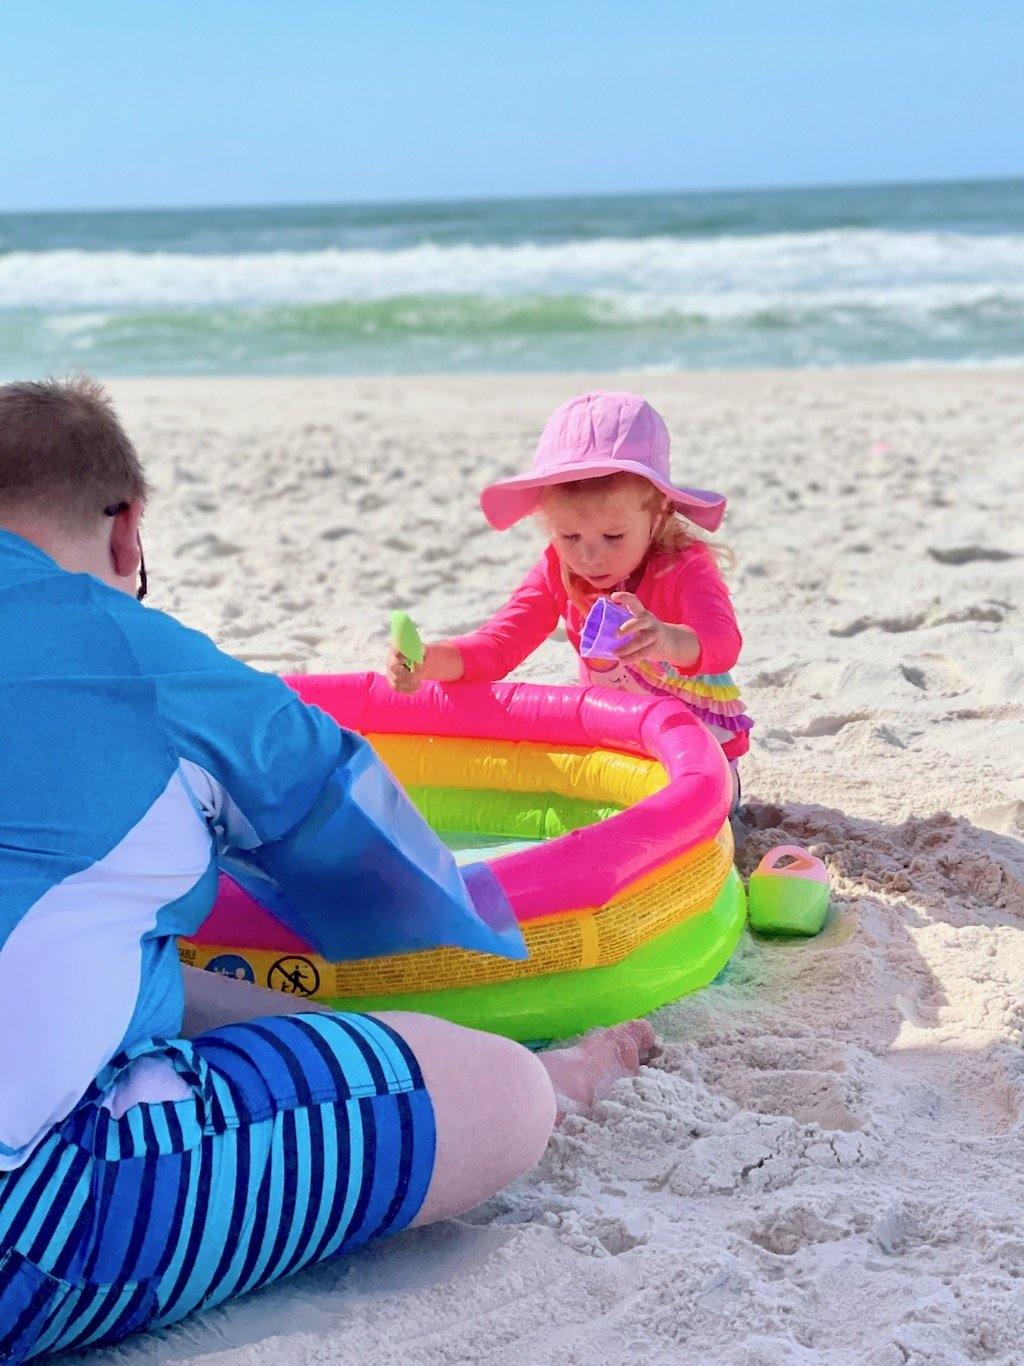 two kids playing with an inflatable pool at the beach